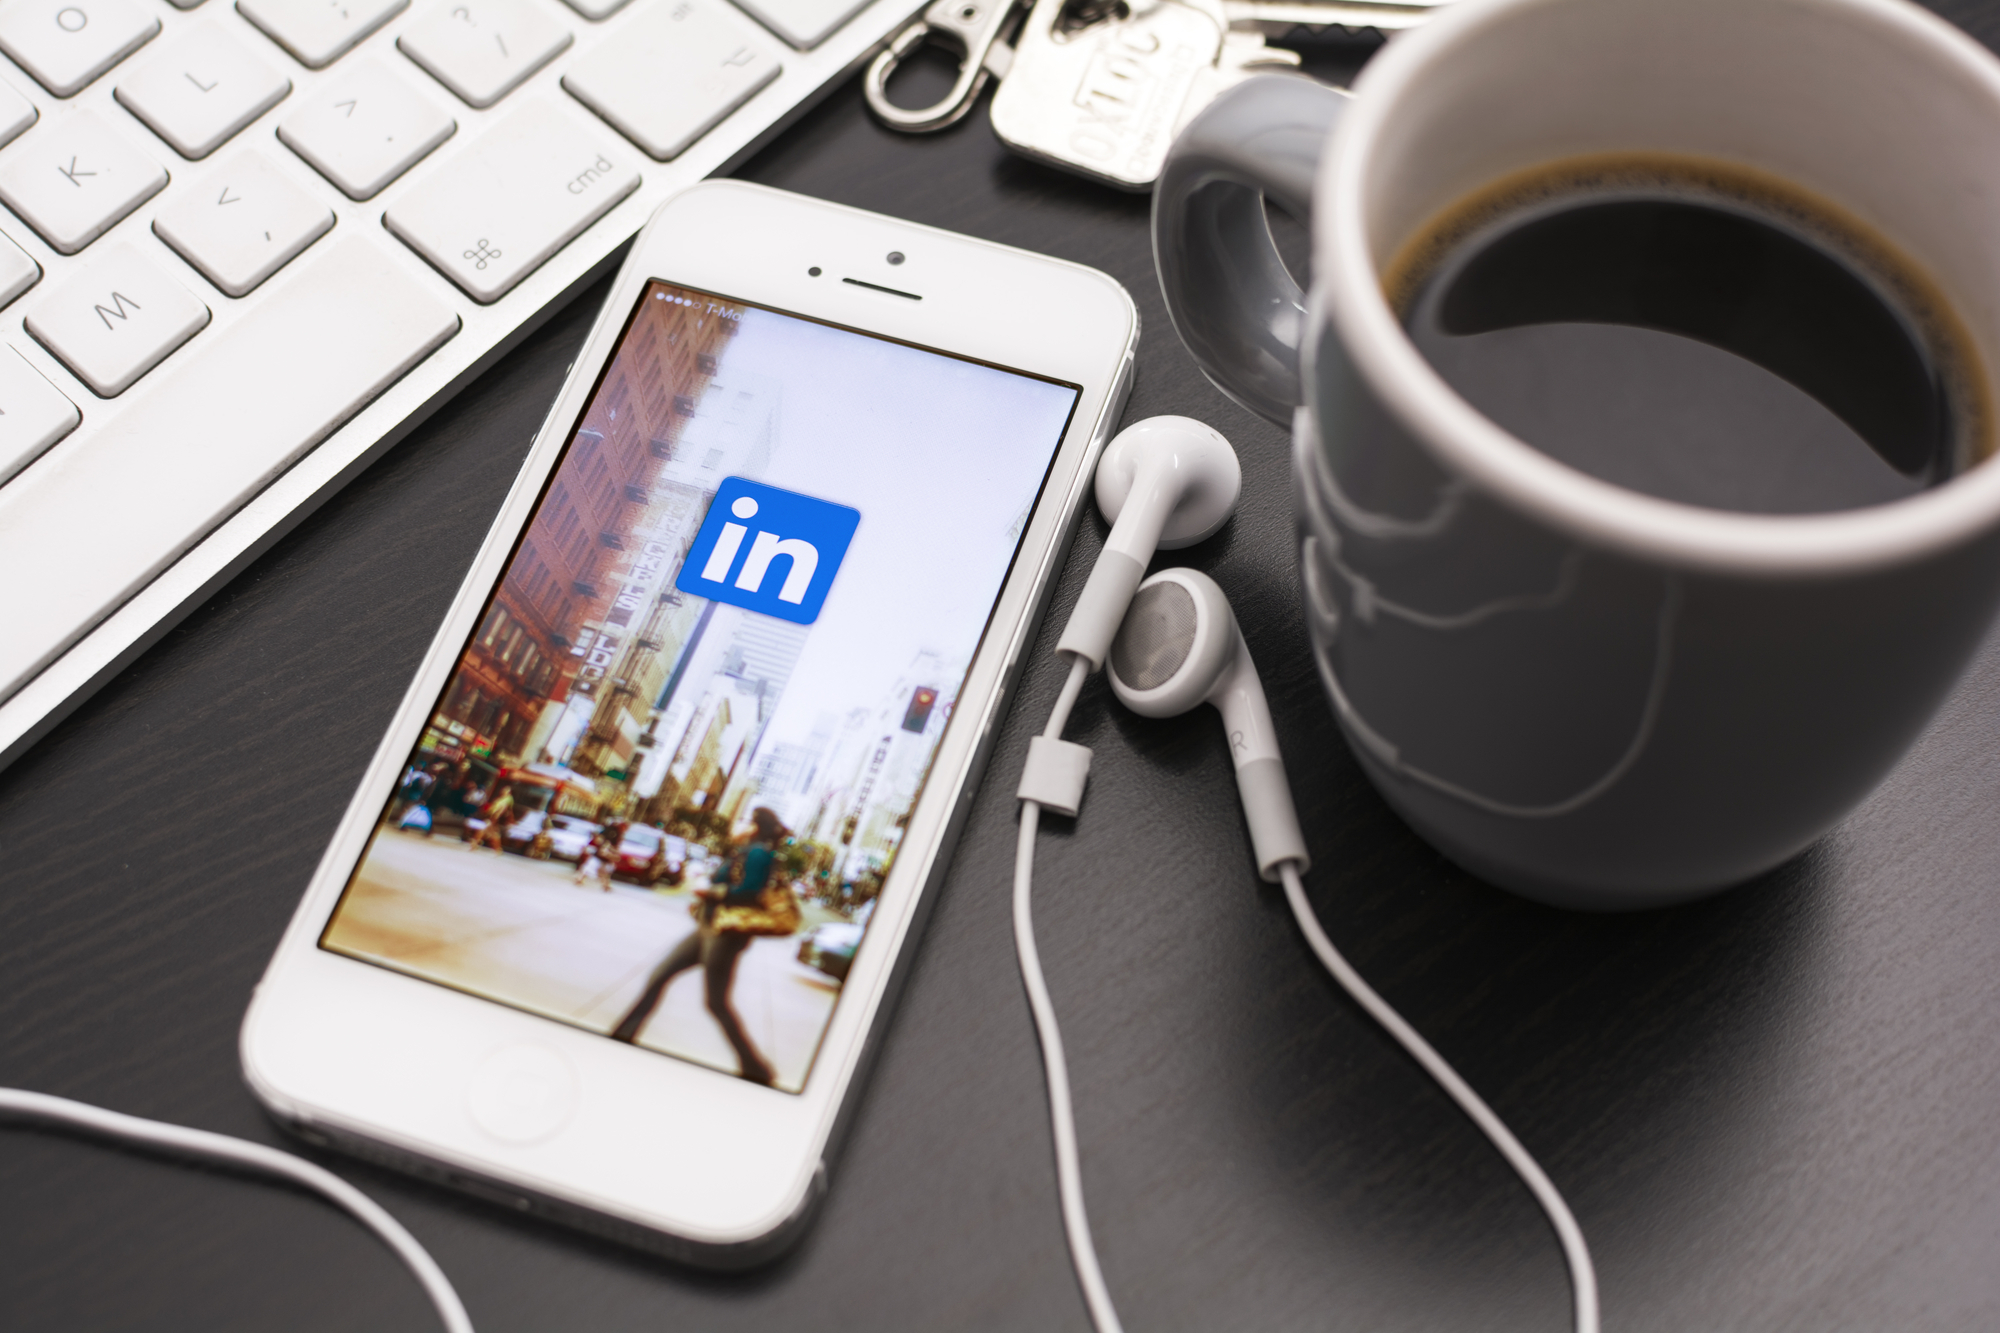 Phone on a desk displaying linkedin